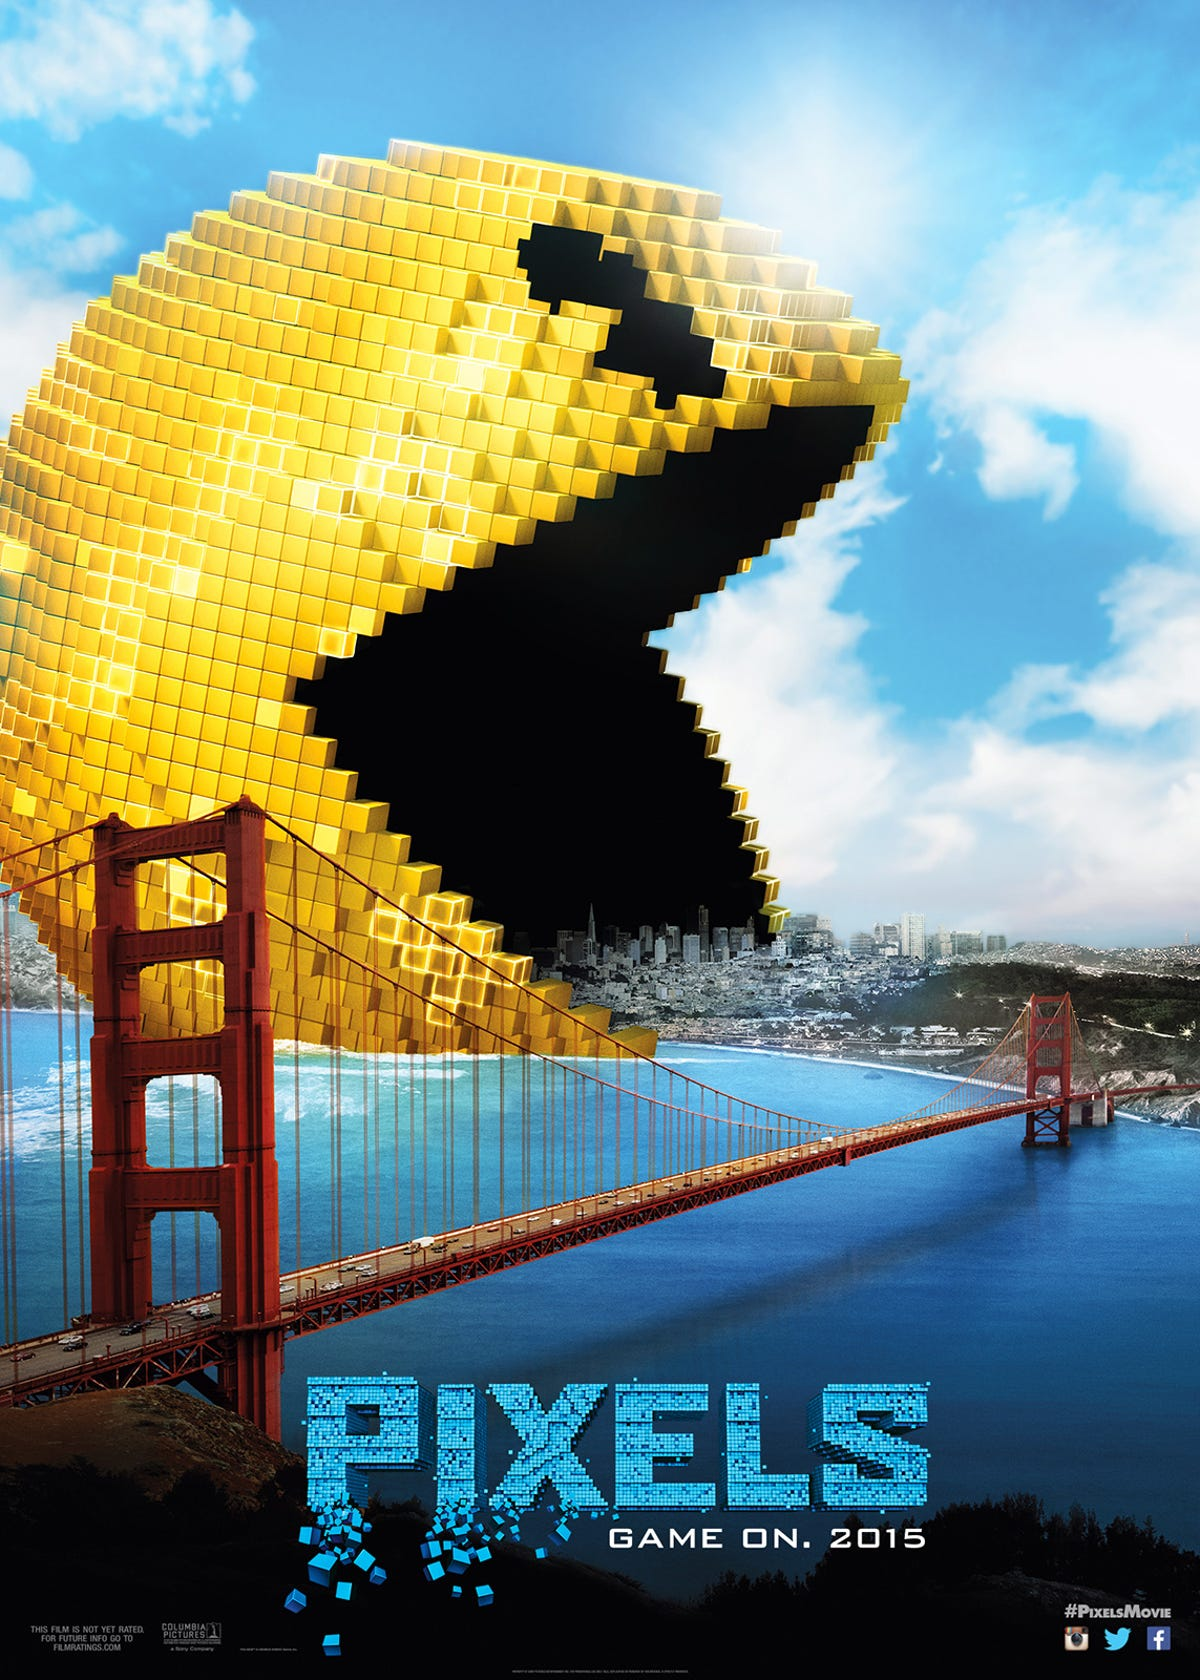 Pixels' trailer: the voxel half-filled, not half-empty